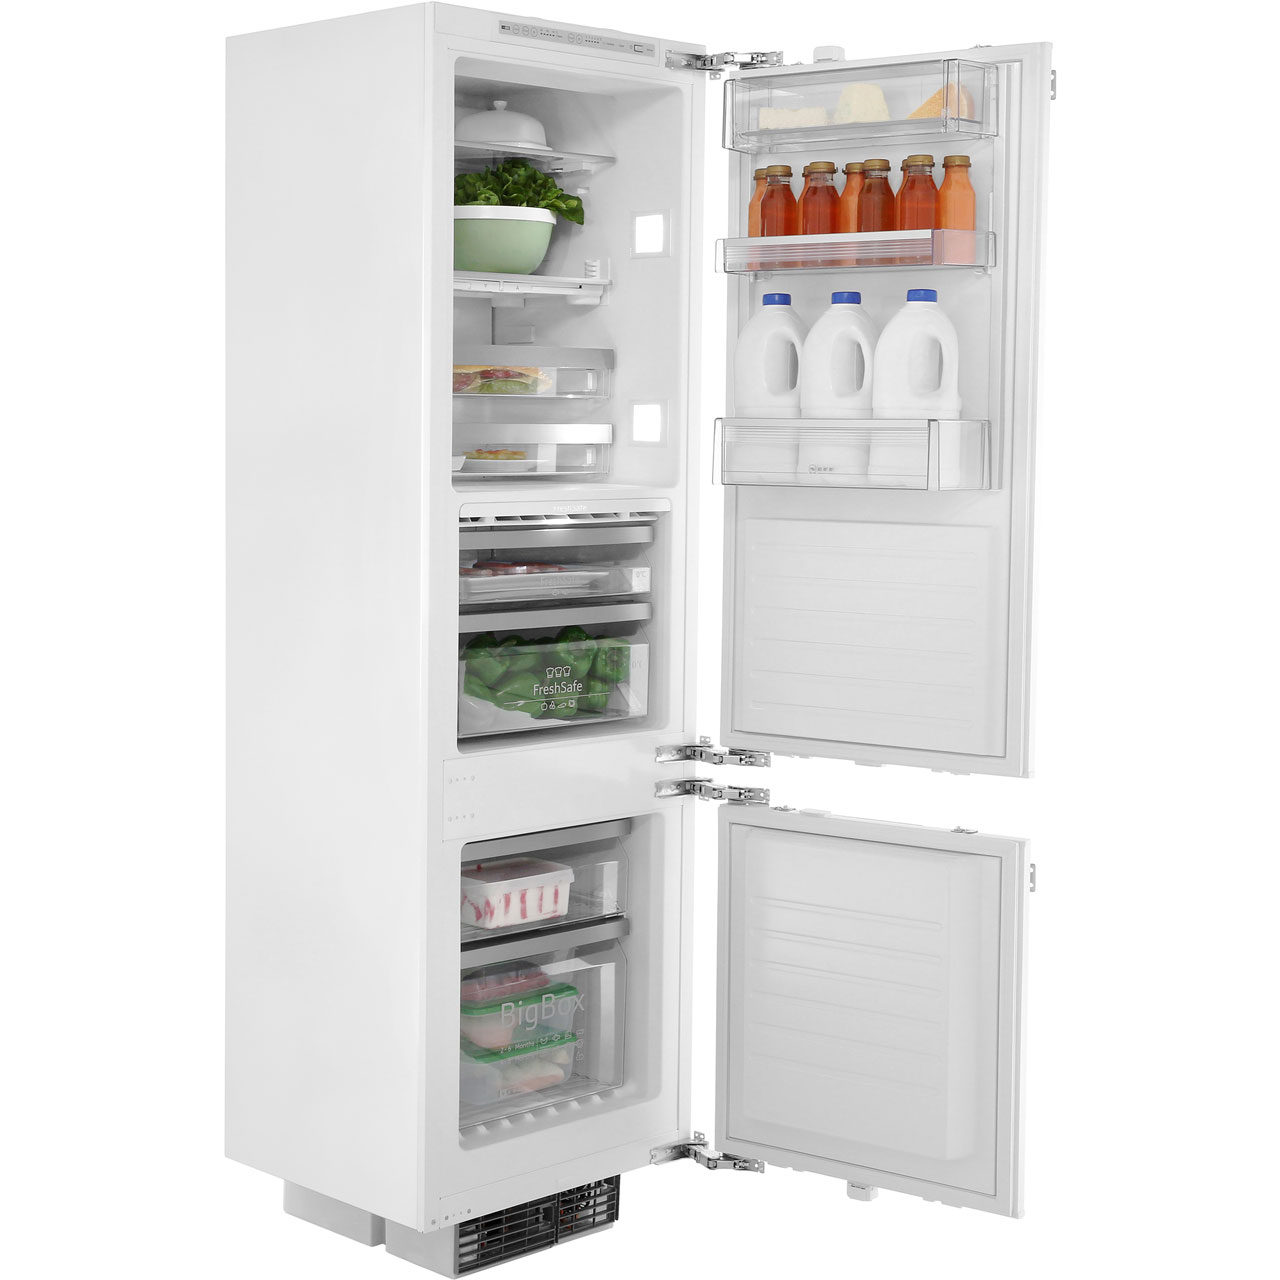 8b837fd6477 ... NEFF N90 K8345X0 Integrated 70 30 Frost Free Fridge Freezer with Fixed  Door Fixing Kit ...